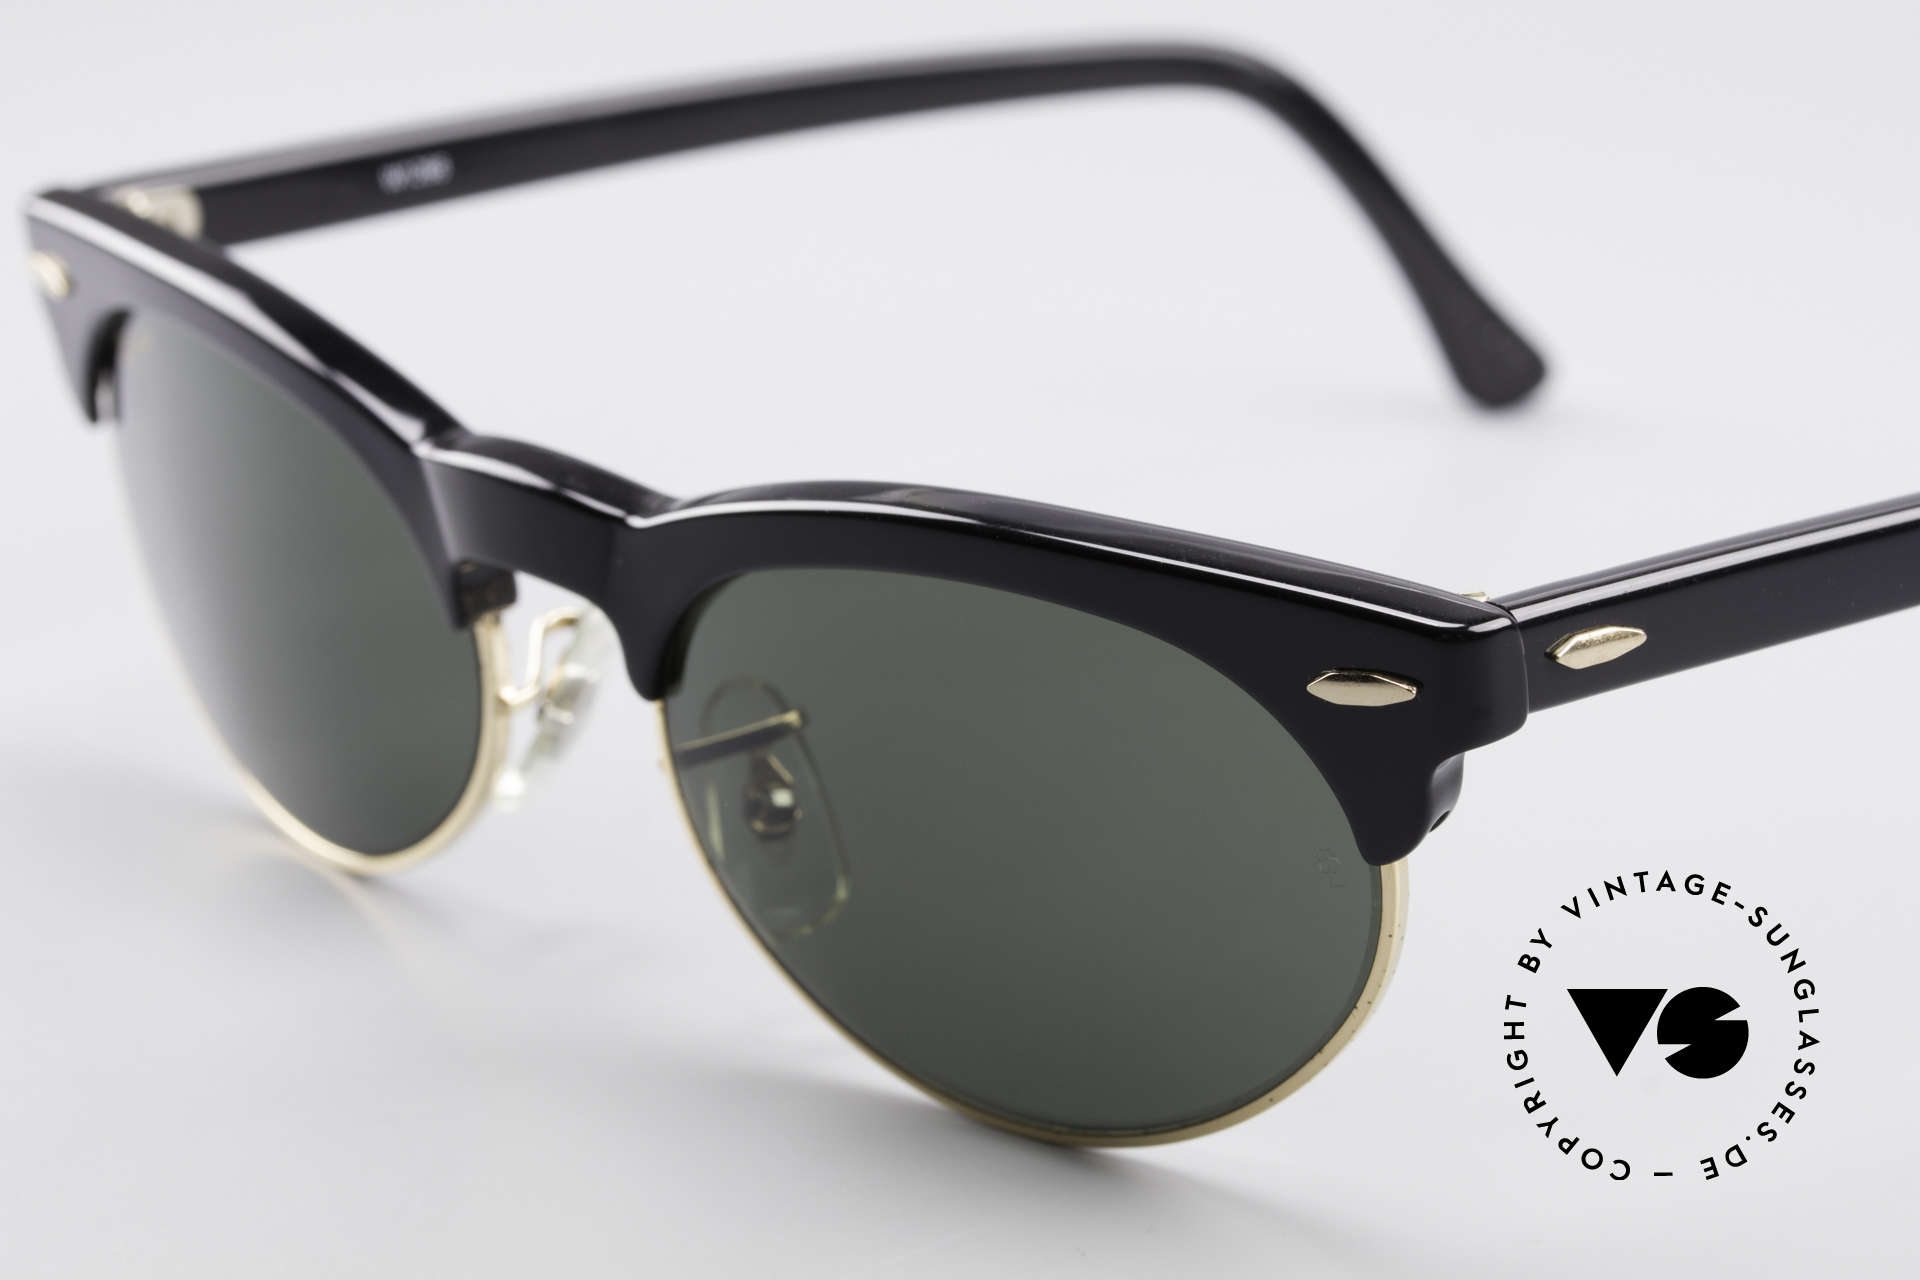 Ray Ban Oval Max 80's Bausch & Lomb Shades B&L, Size: medium, Made for Men and Women